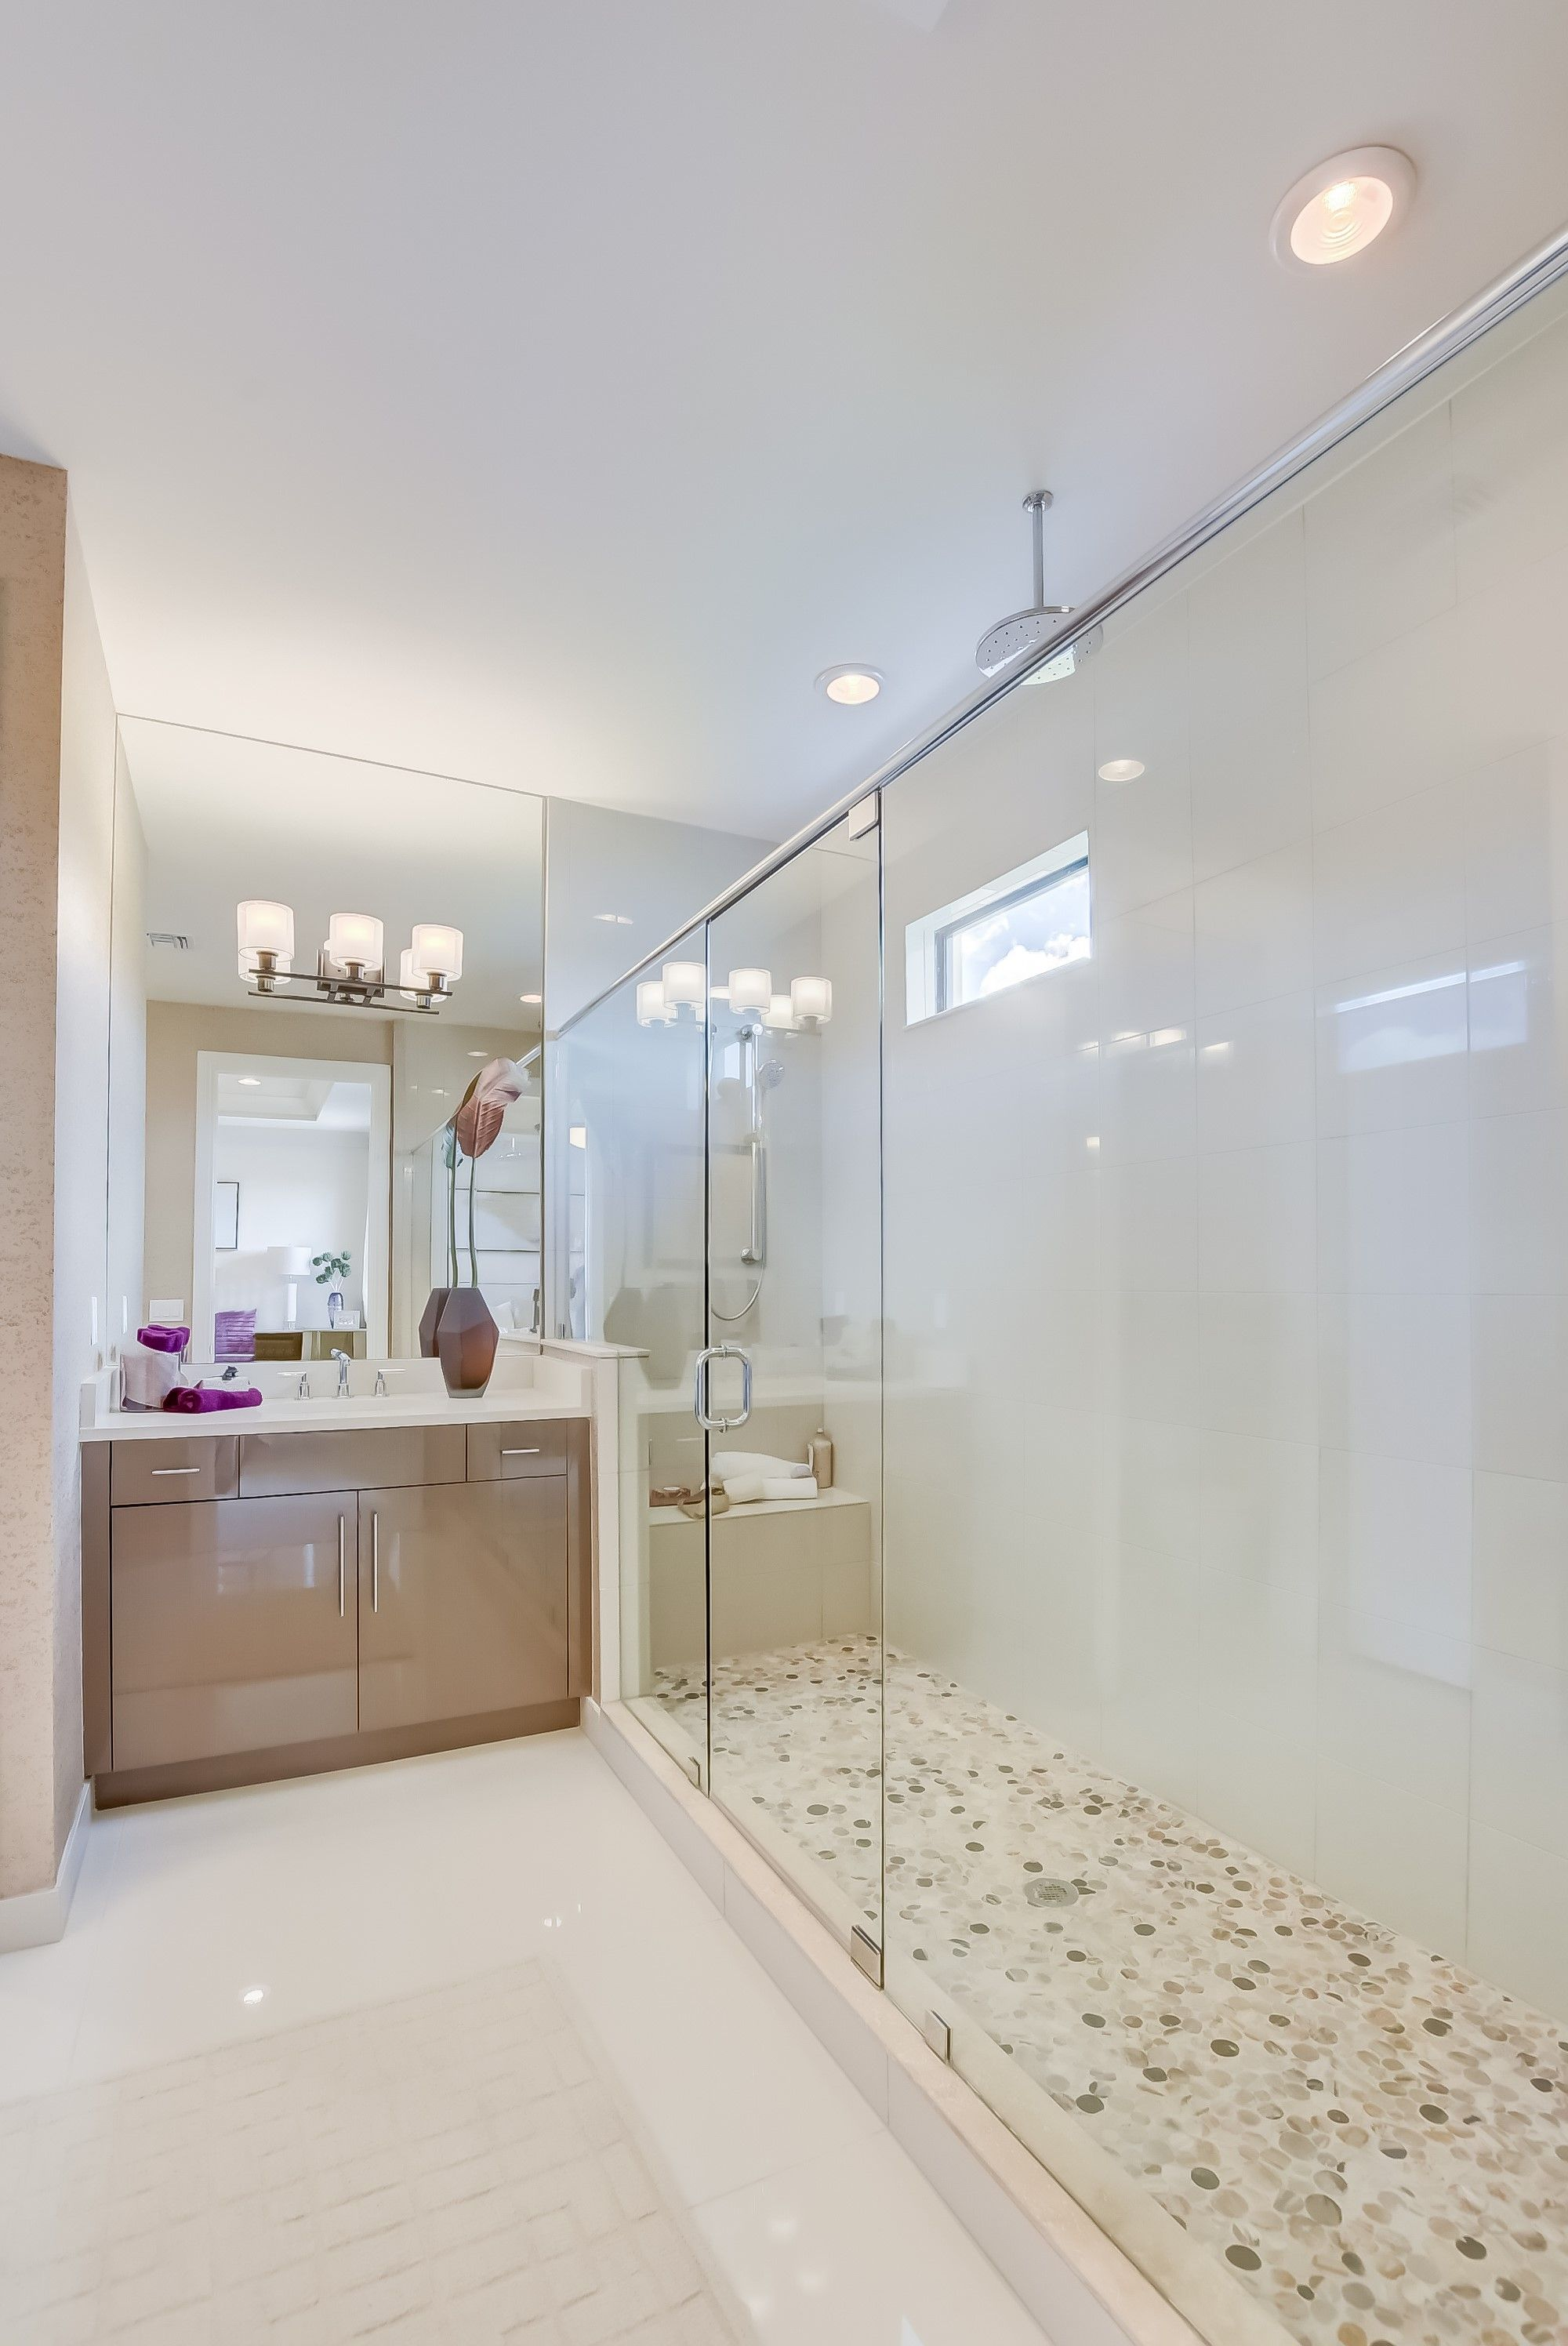 Bathroom featured in the Callista II By K. Hovnanian® Homes in Palm Beach County, FL